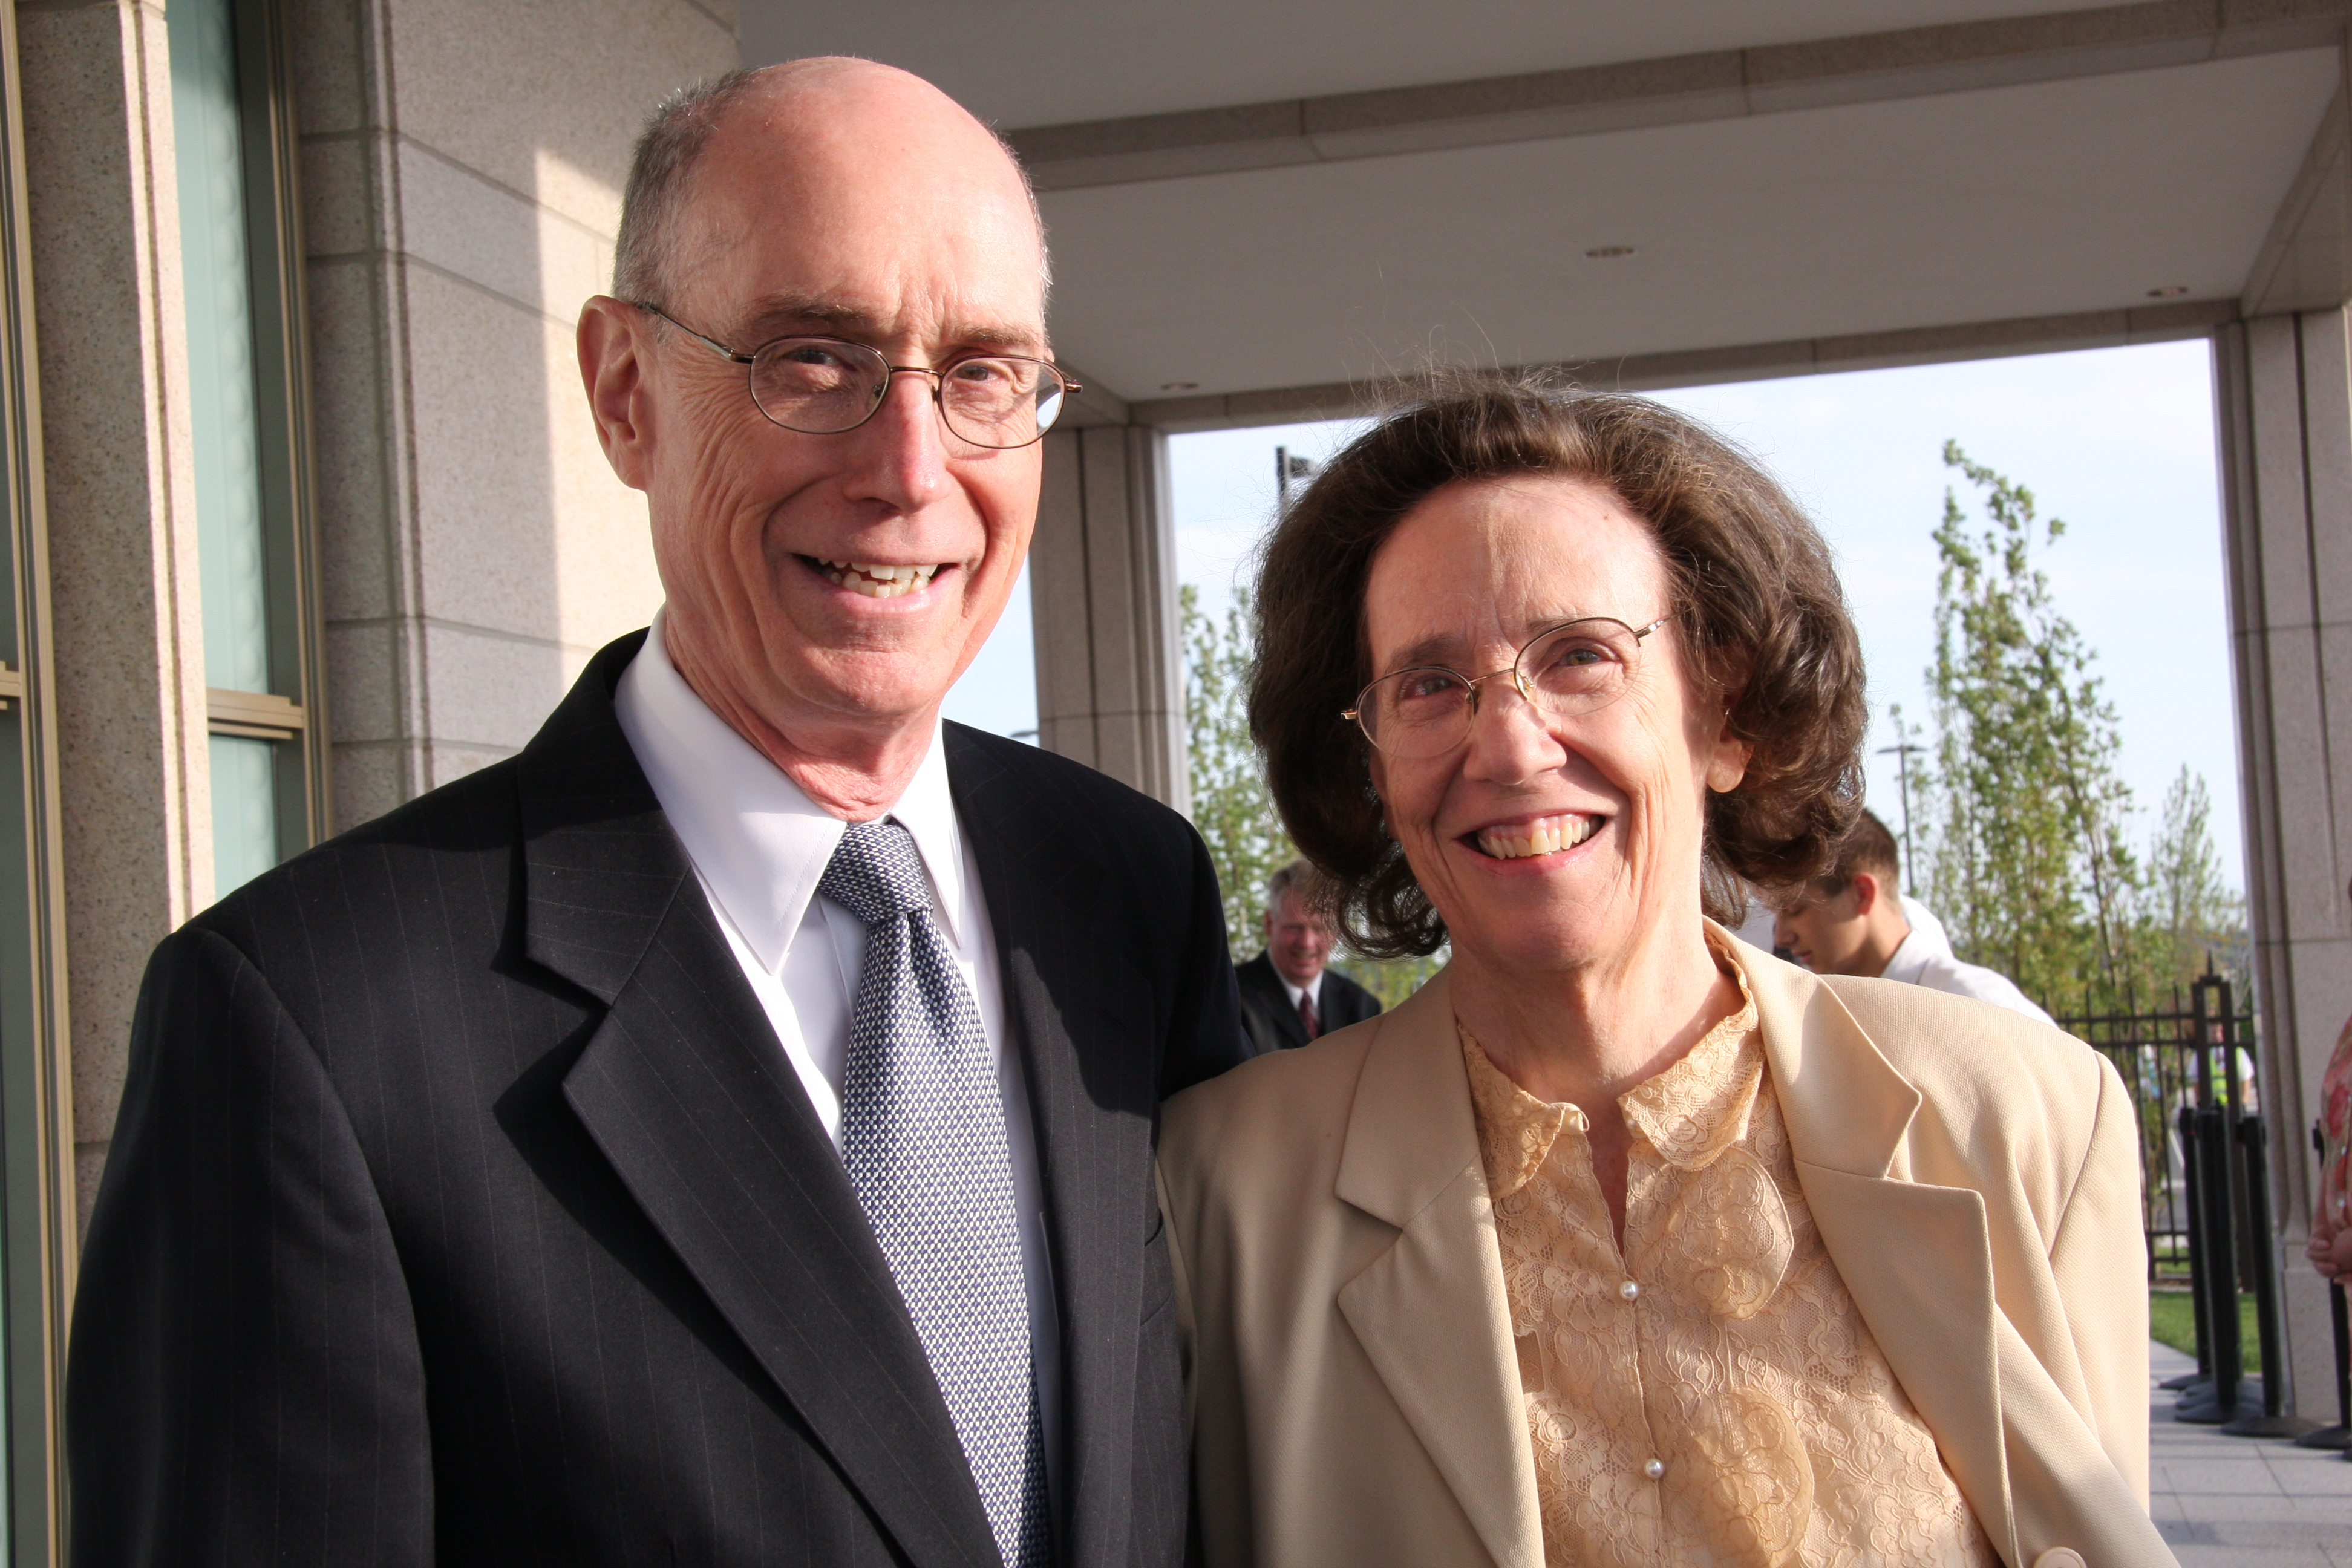 President Henry B. Eyring and his wife, Sister Kathleen Eyring, arrive Saturday morning for the second day of the dedication of the Oquirrh Mountain Utah Temple on Aug. 22, 2009 in South Jordan, Utah.